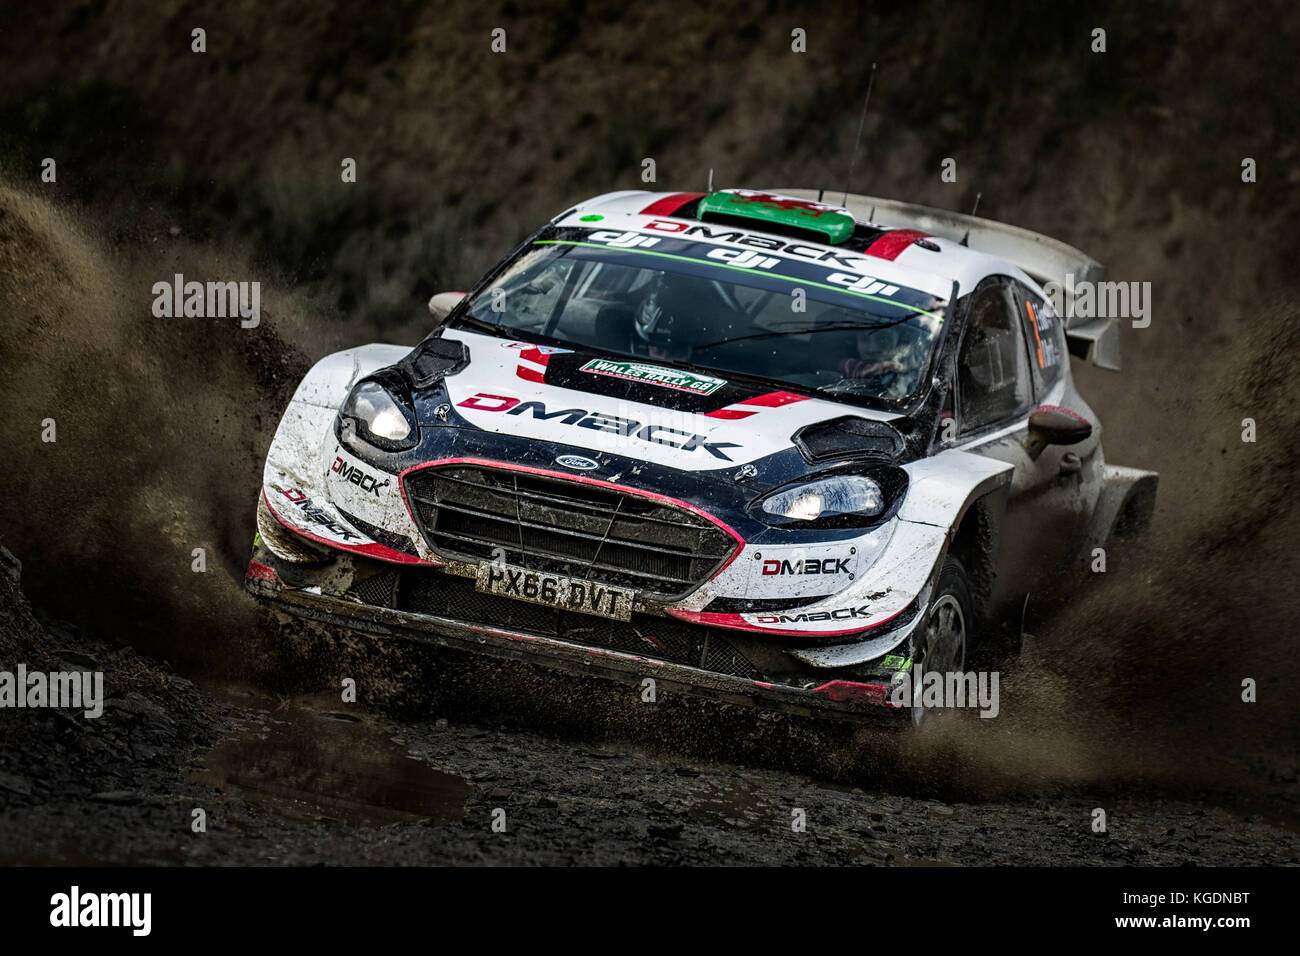 Elfyn Evans on way to victory in the  WRC World Rally Championship Day Insure Wales Rally GB 2017 - Stock Image